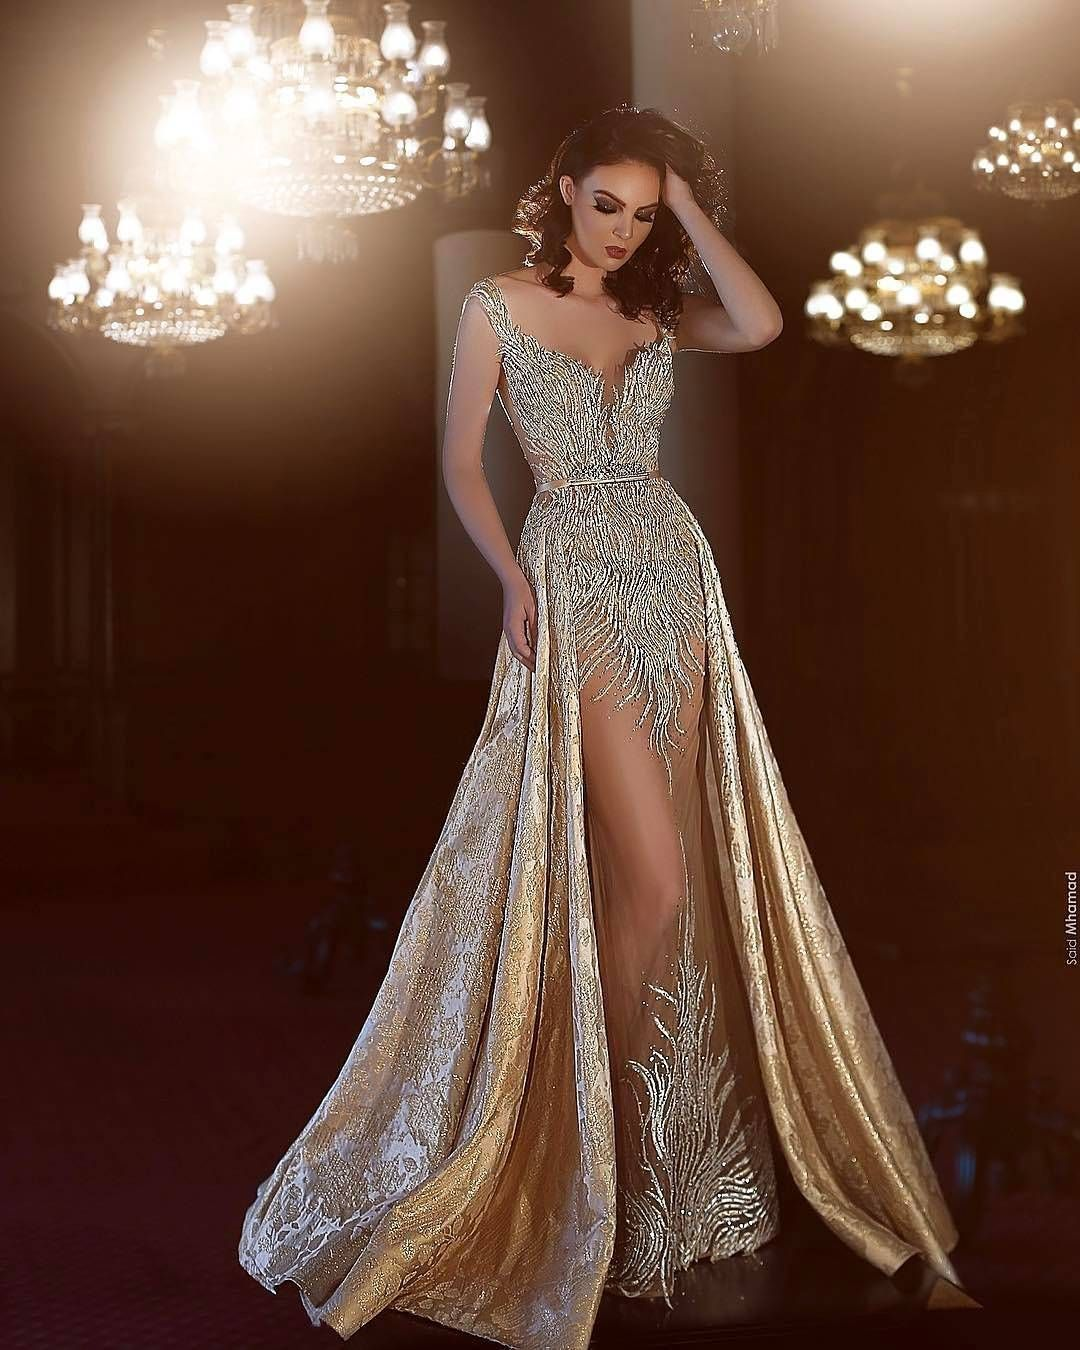 8 Lovely Classy #Evening #Gowns For Women Ideas  Evening gowns